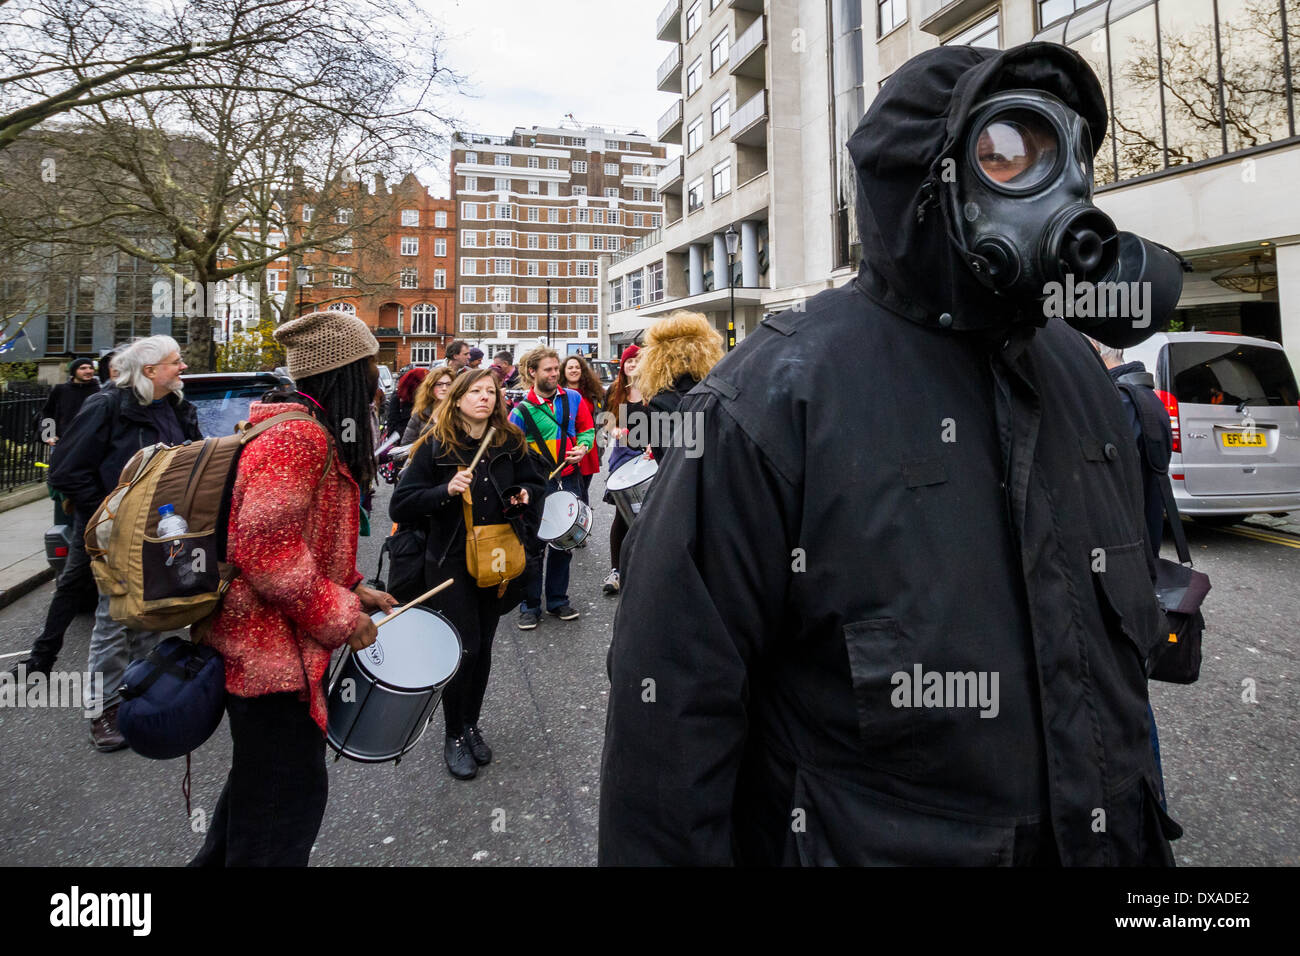 Anti-Fracking protesters march and rally in London, UK. - Stock Image